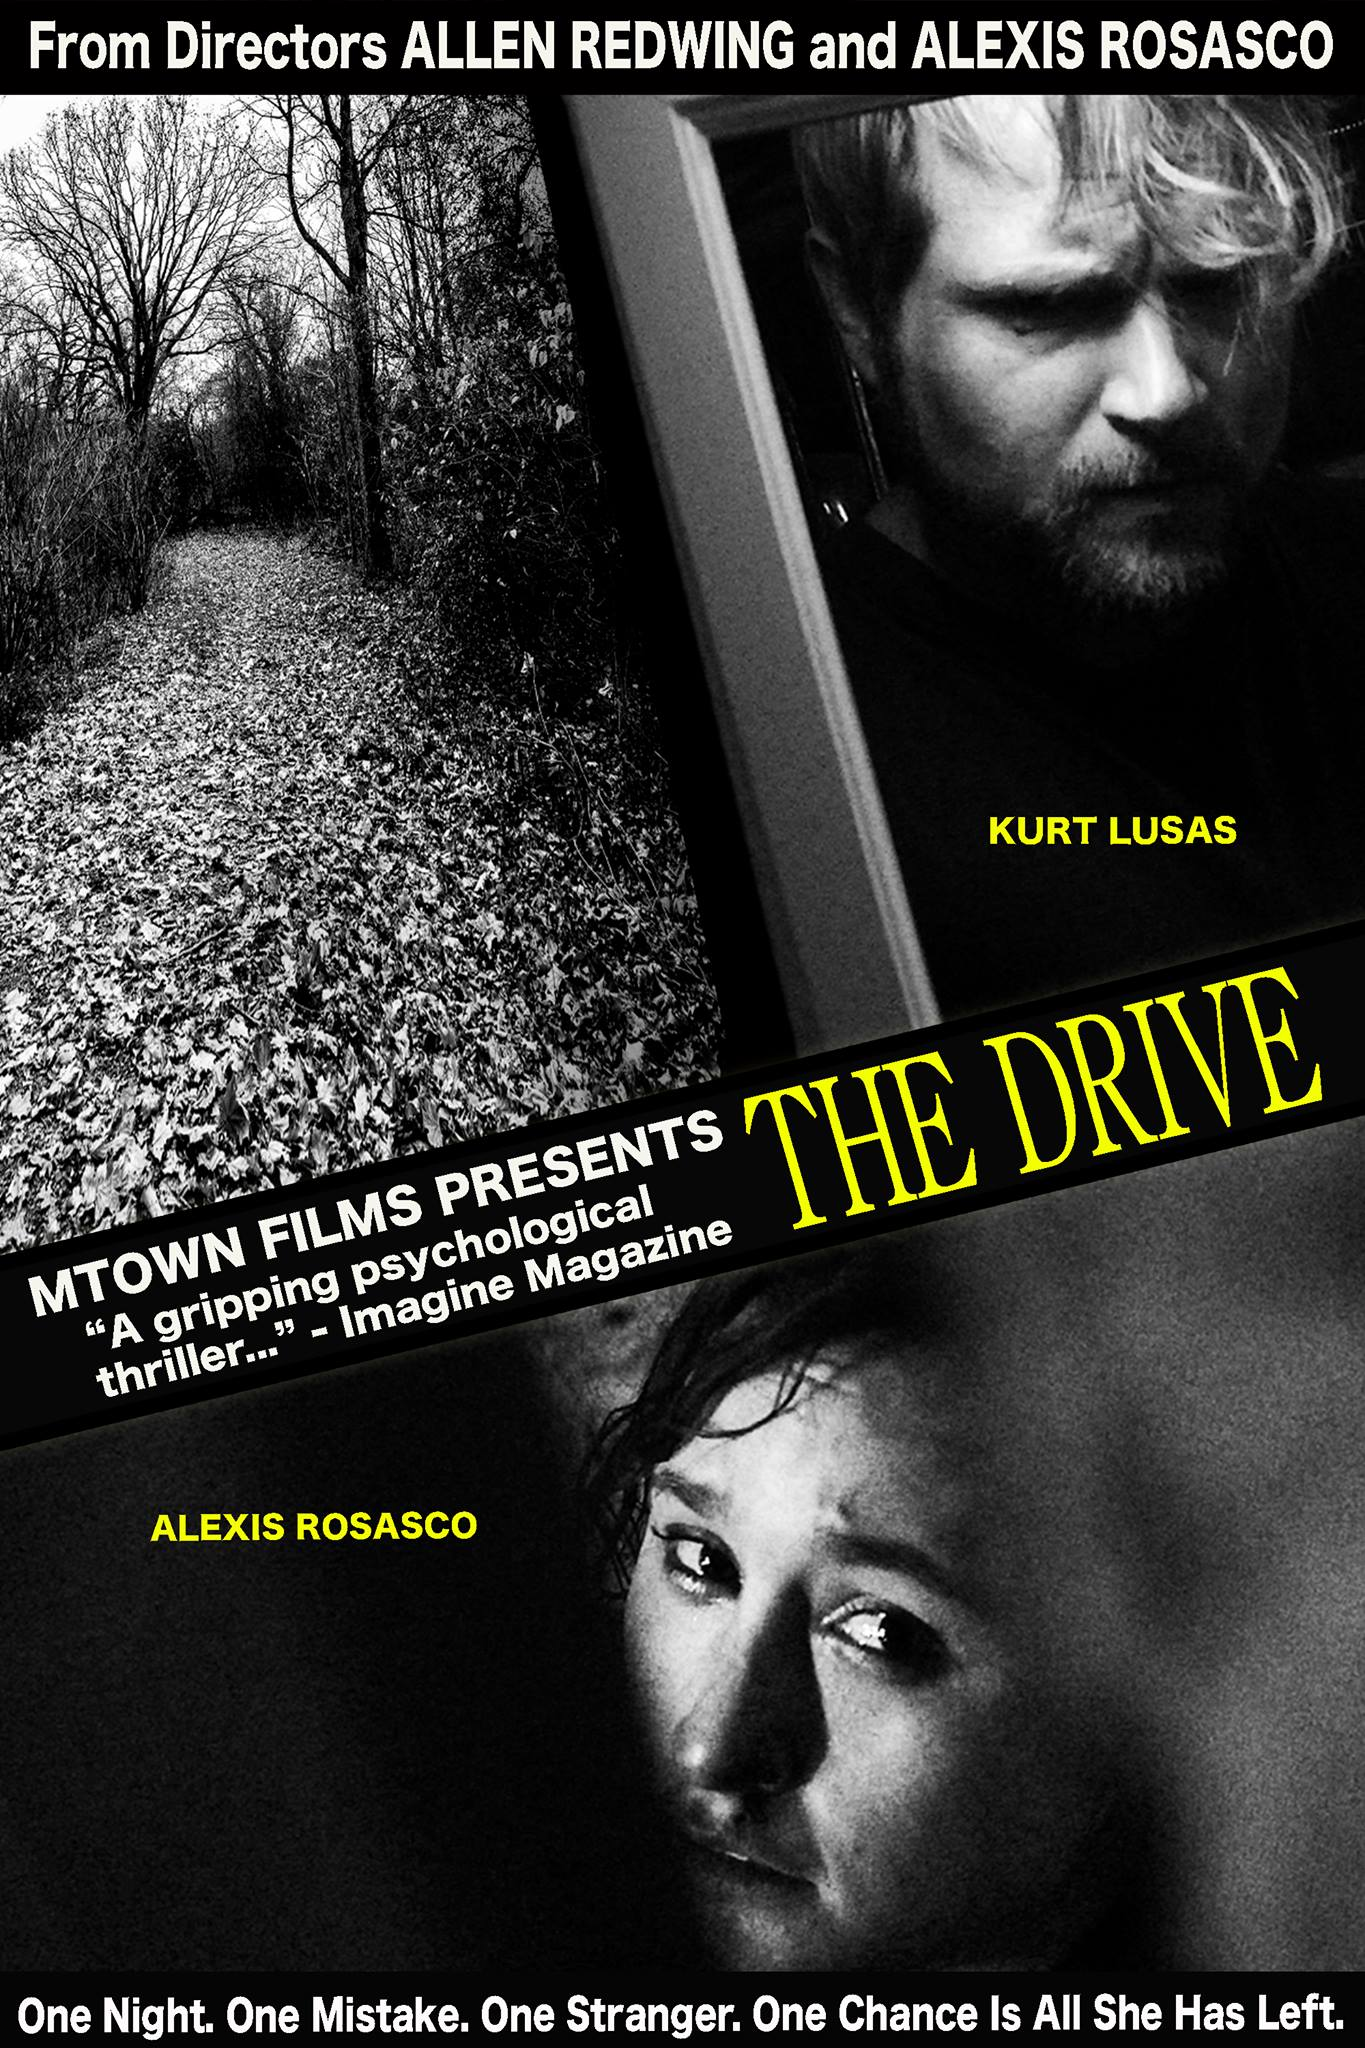 The Drive Movie Poster